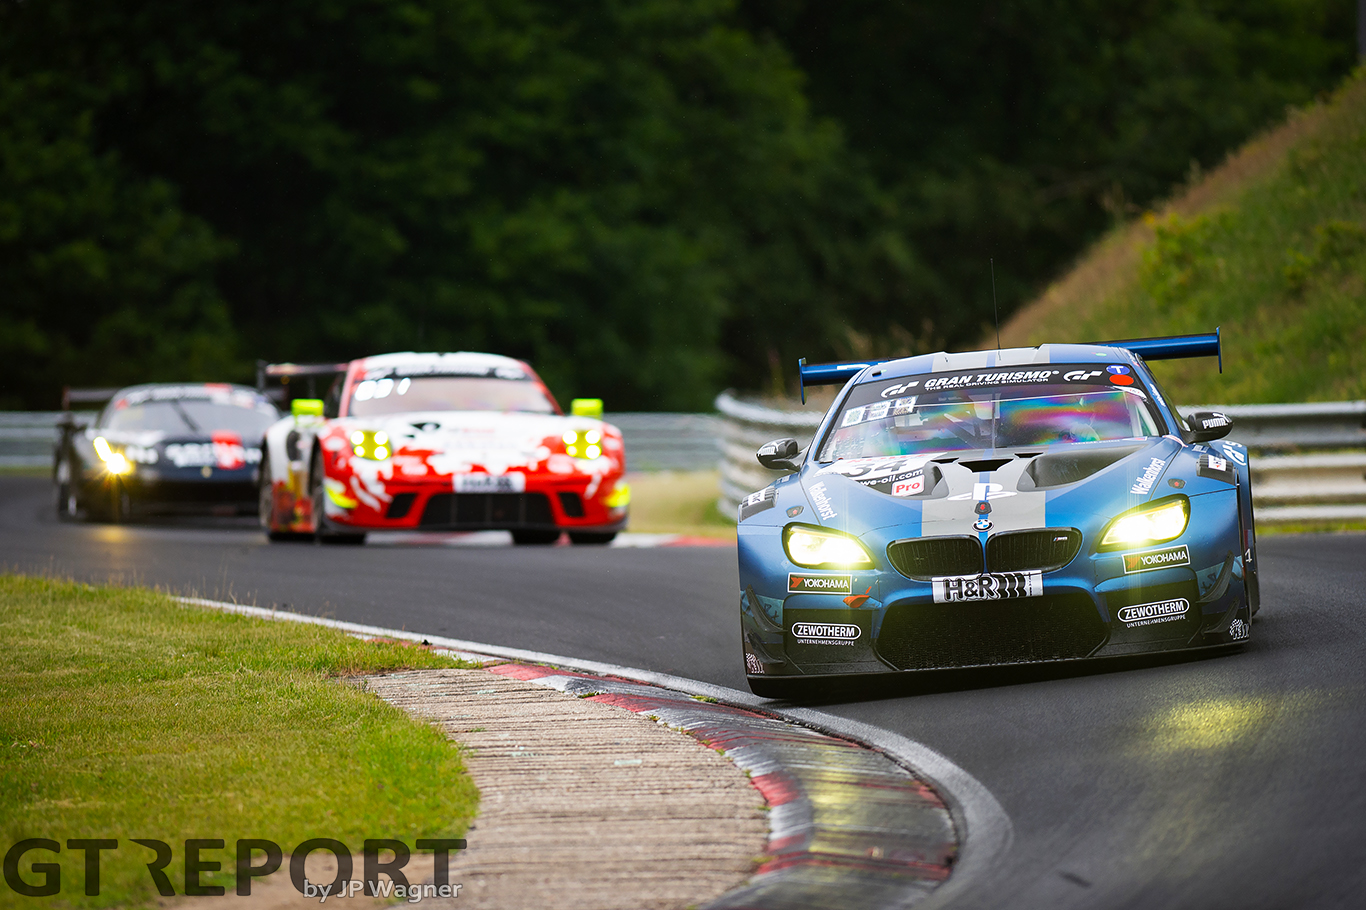 VLN1 race report: Walkenhorst wins after penalty Haupt Racing on final lap